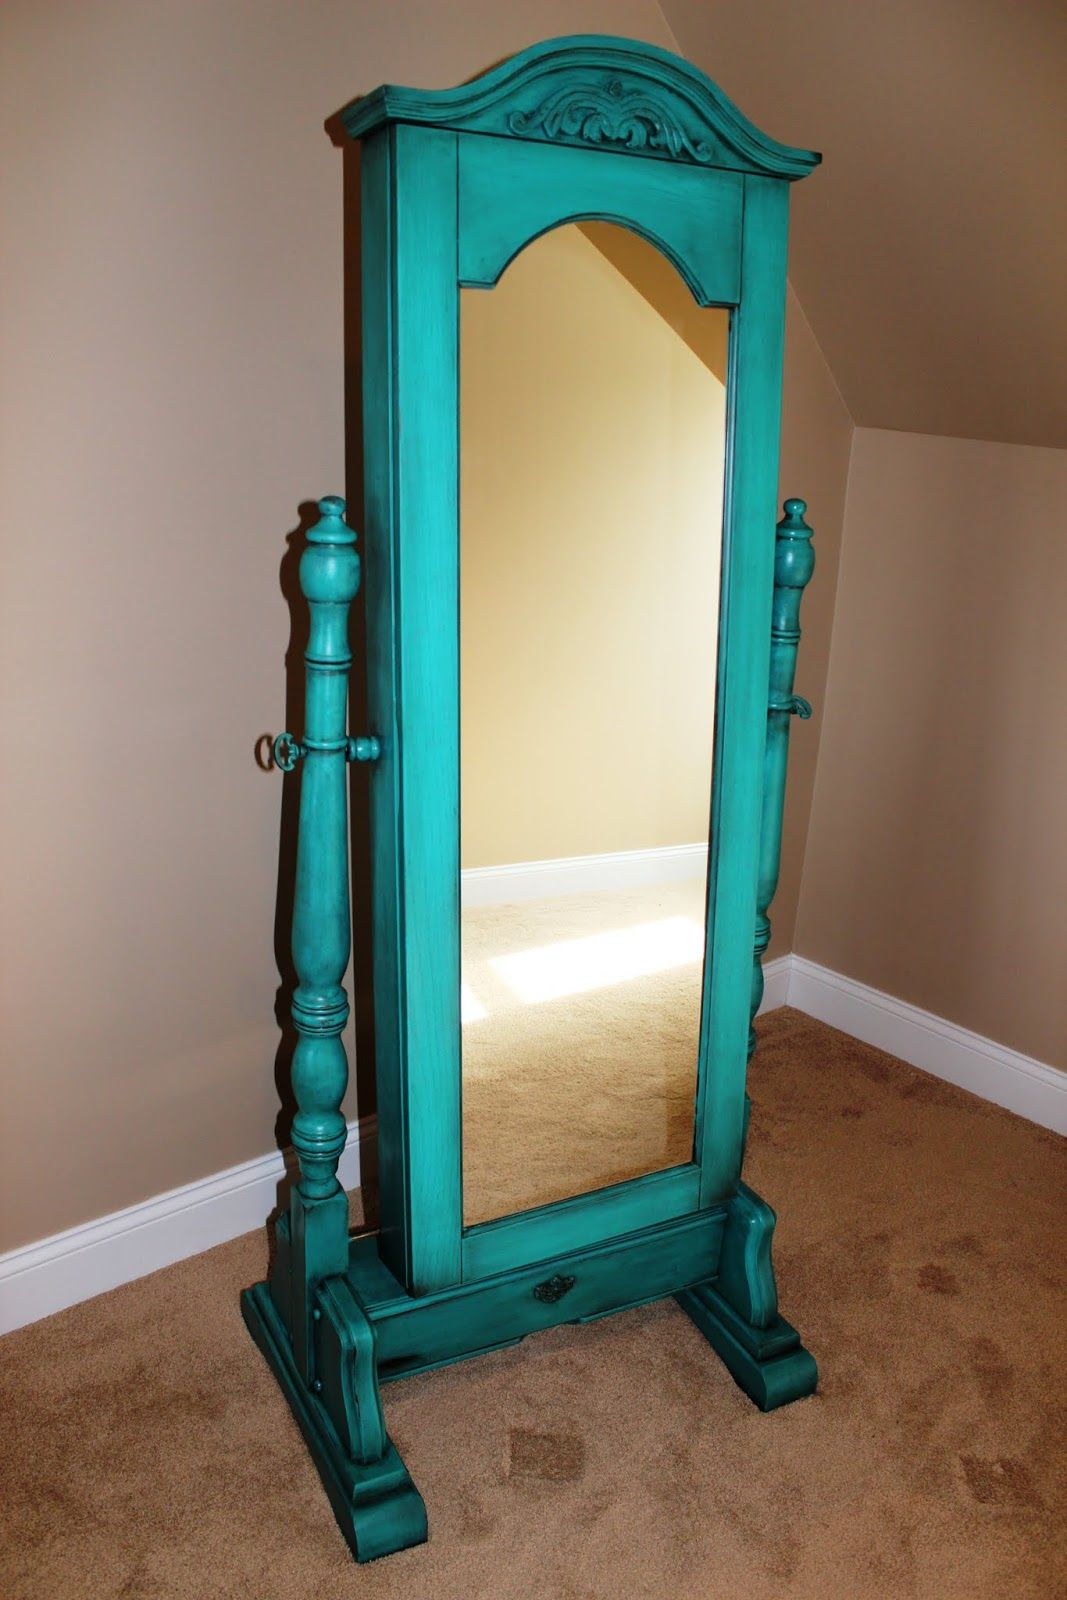 Awesome Turquoise Standing Mirror Jewelry Armoire With Storage